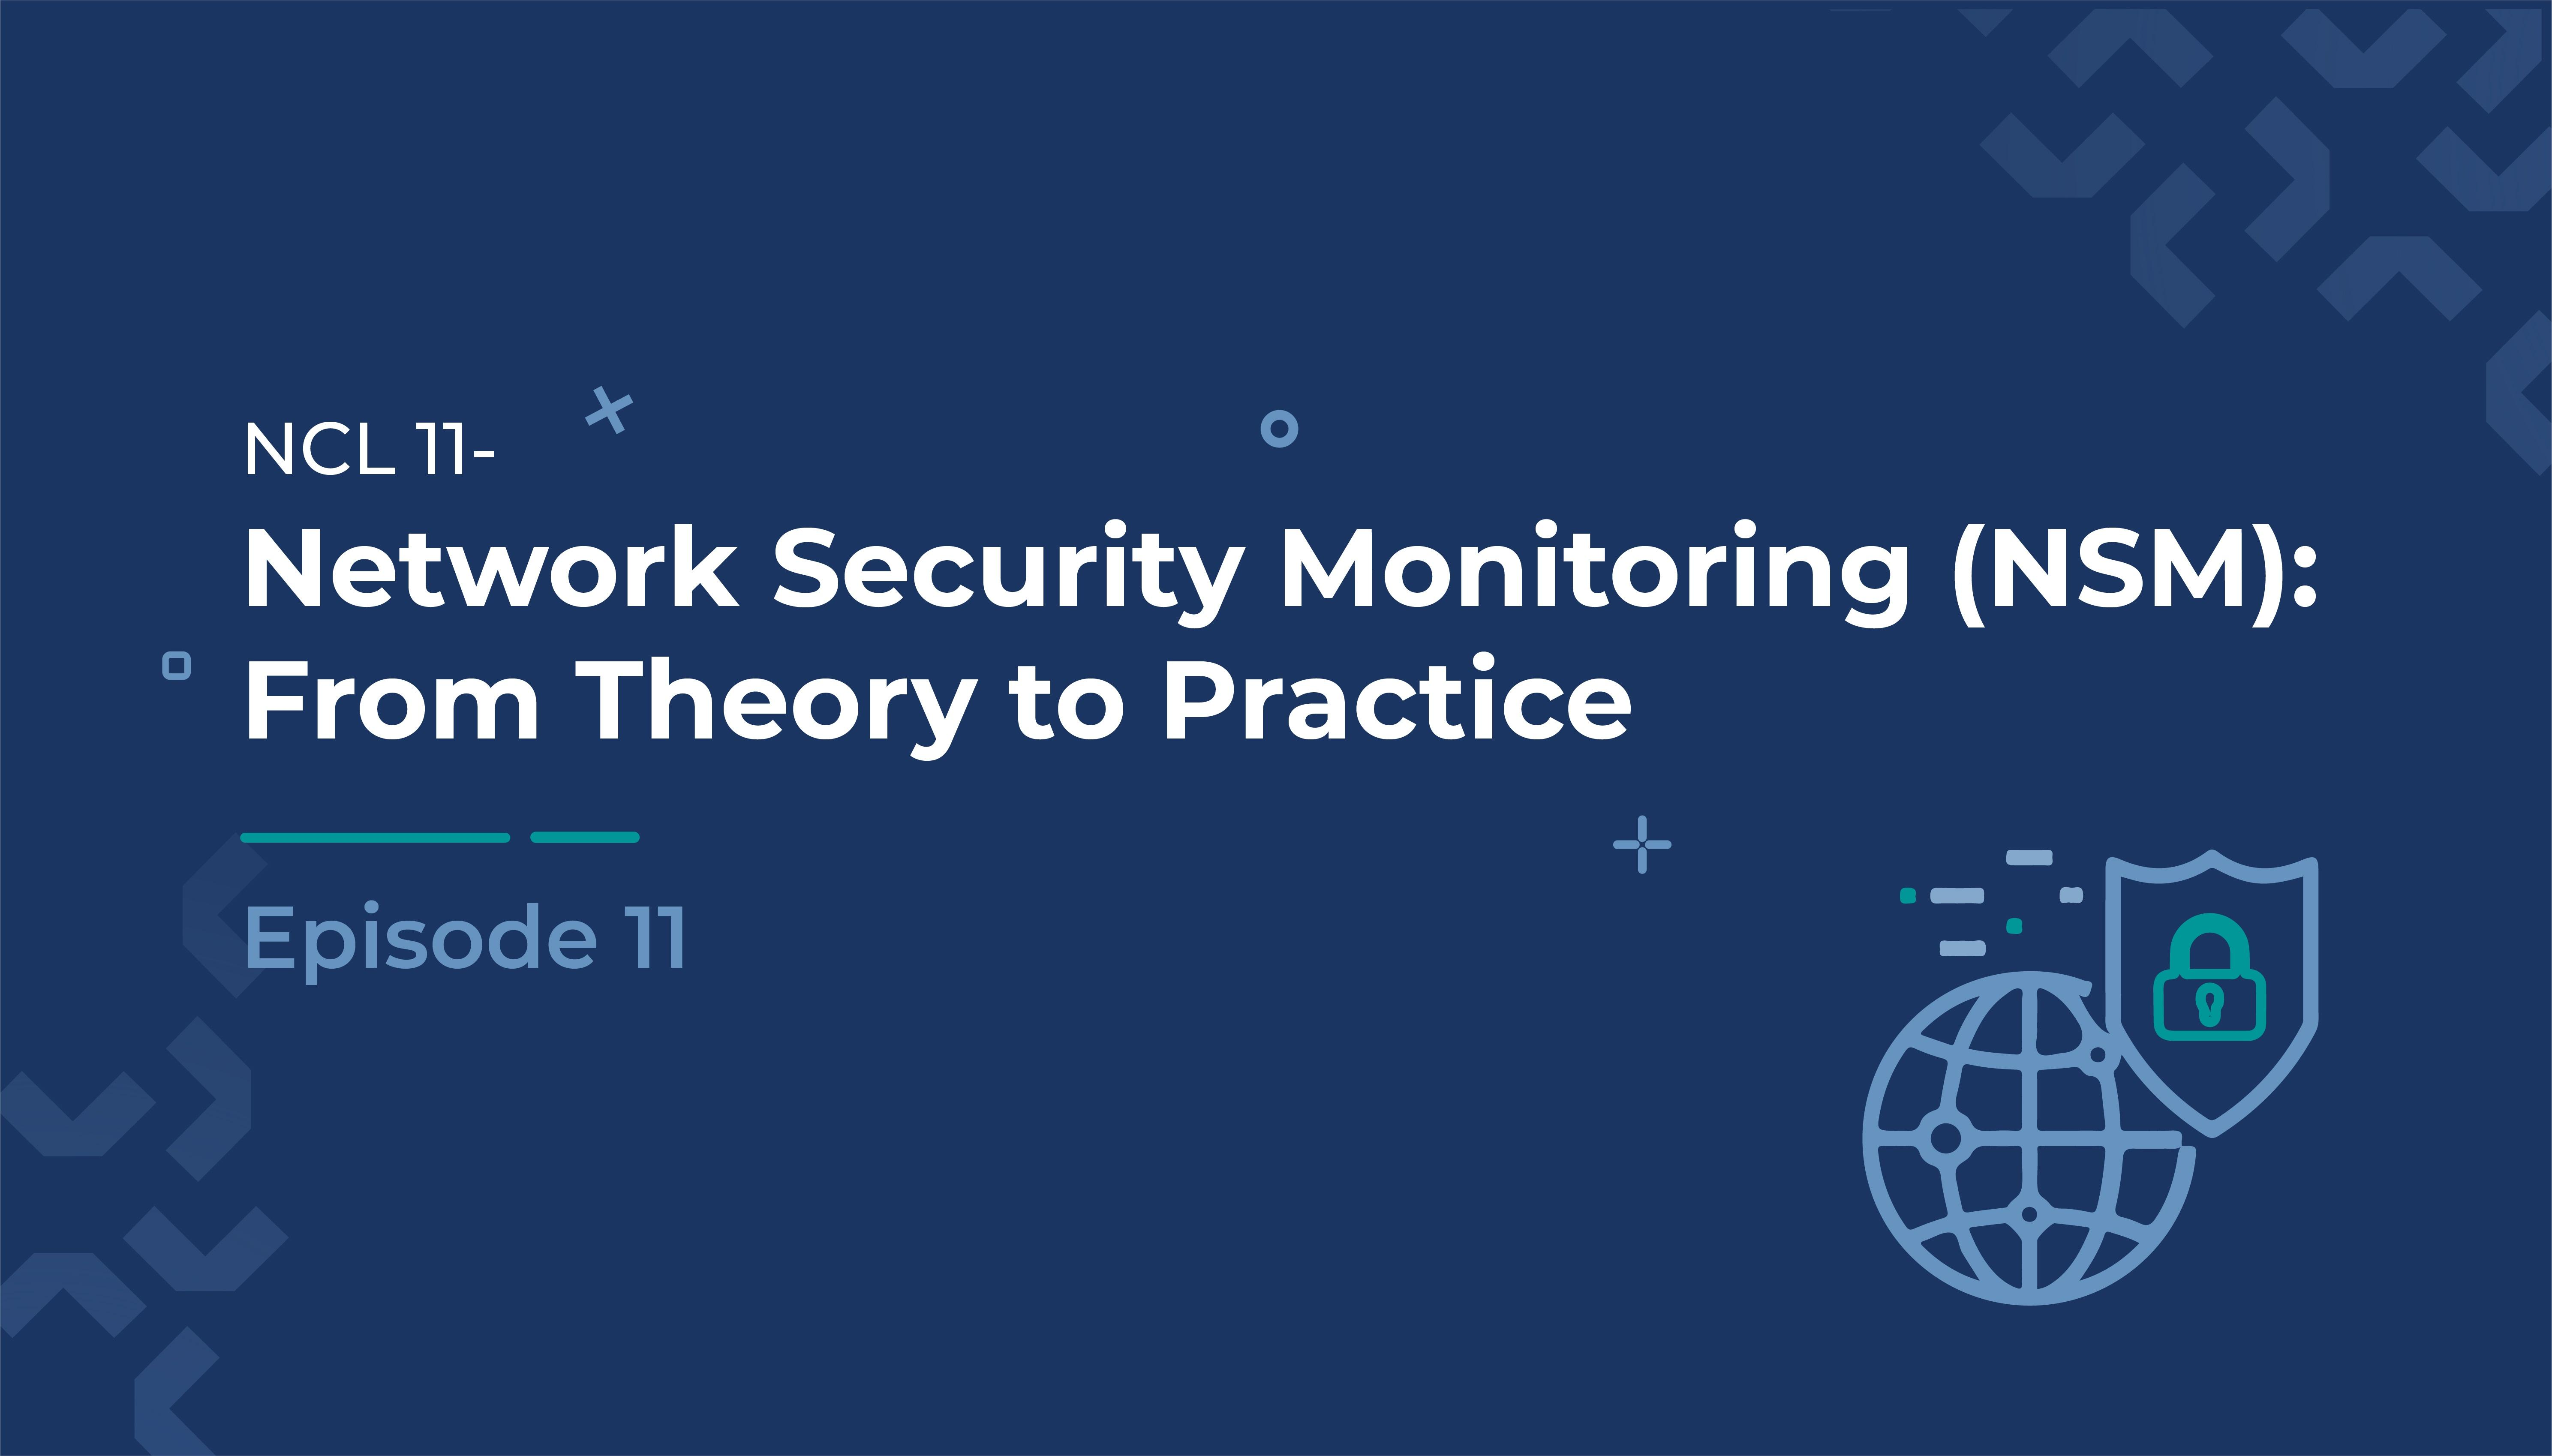 Network Security Monitoring (NSM): From Theory to Practice